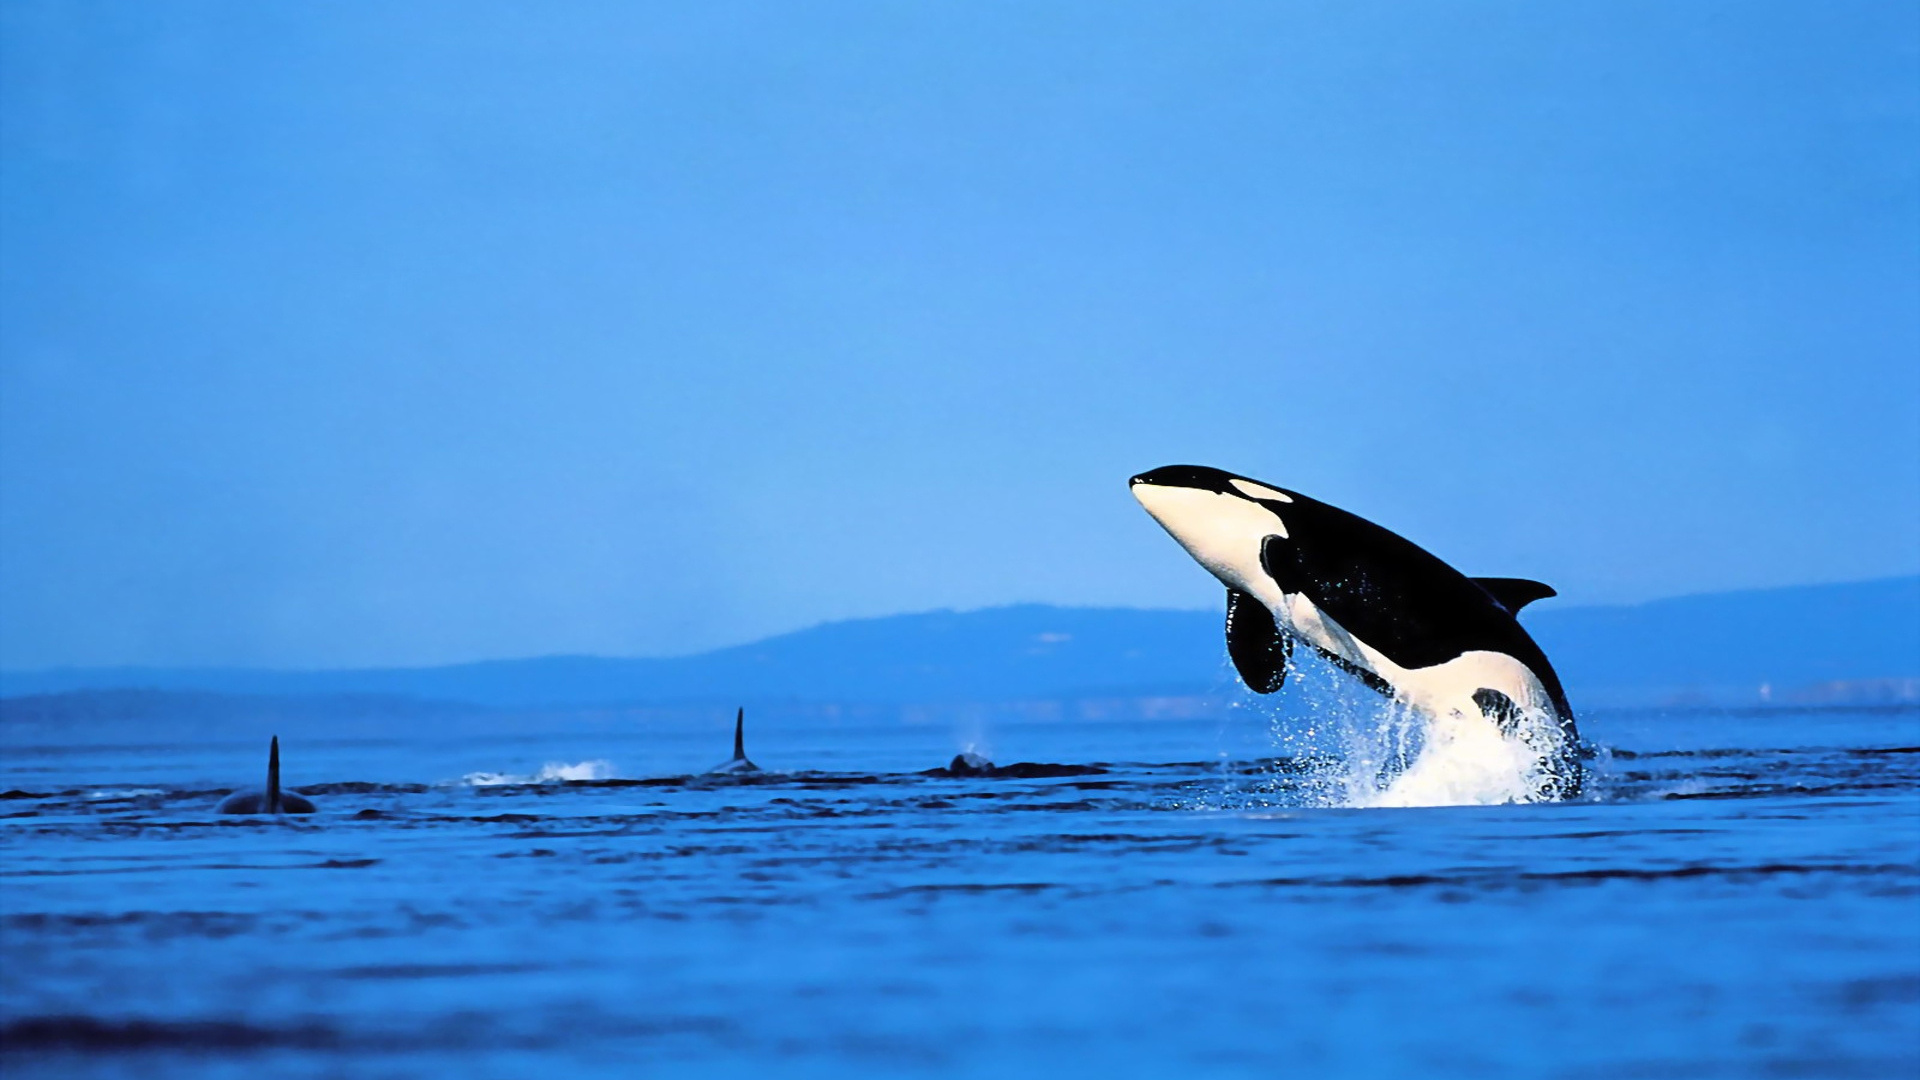 Killer Whales Wallpaper #145826 - Resolution 1920x1080 px